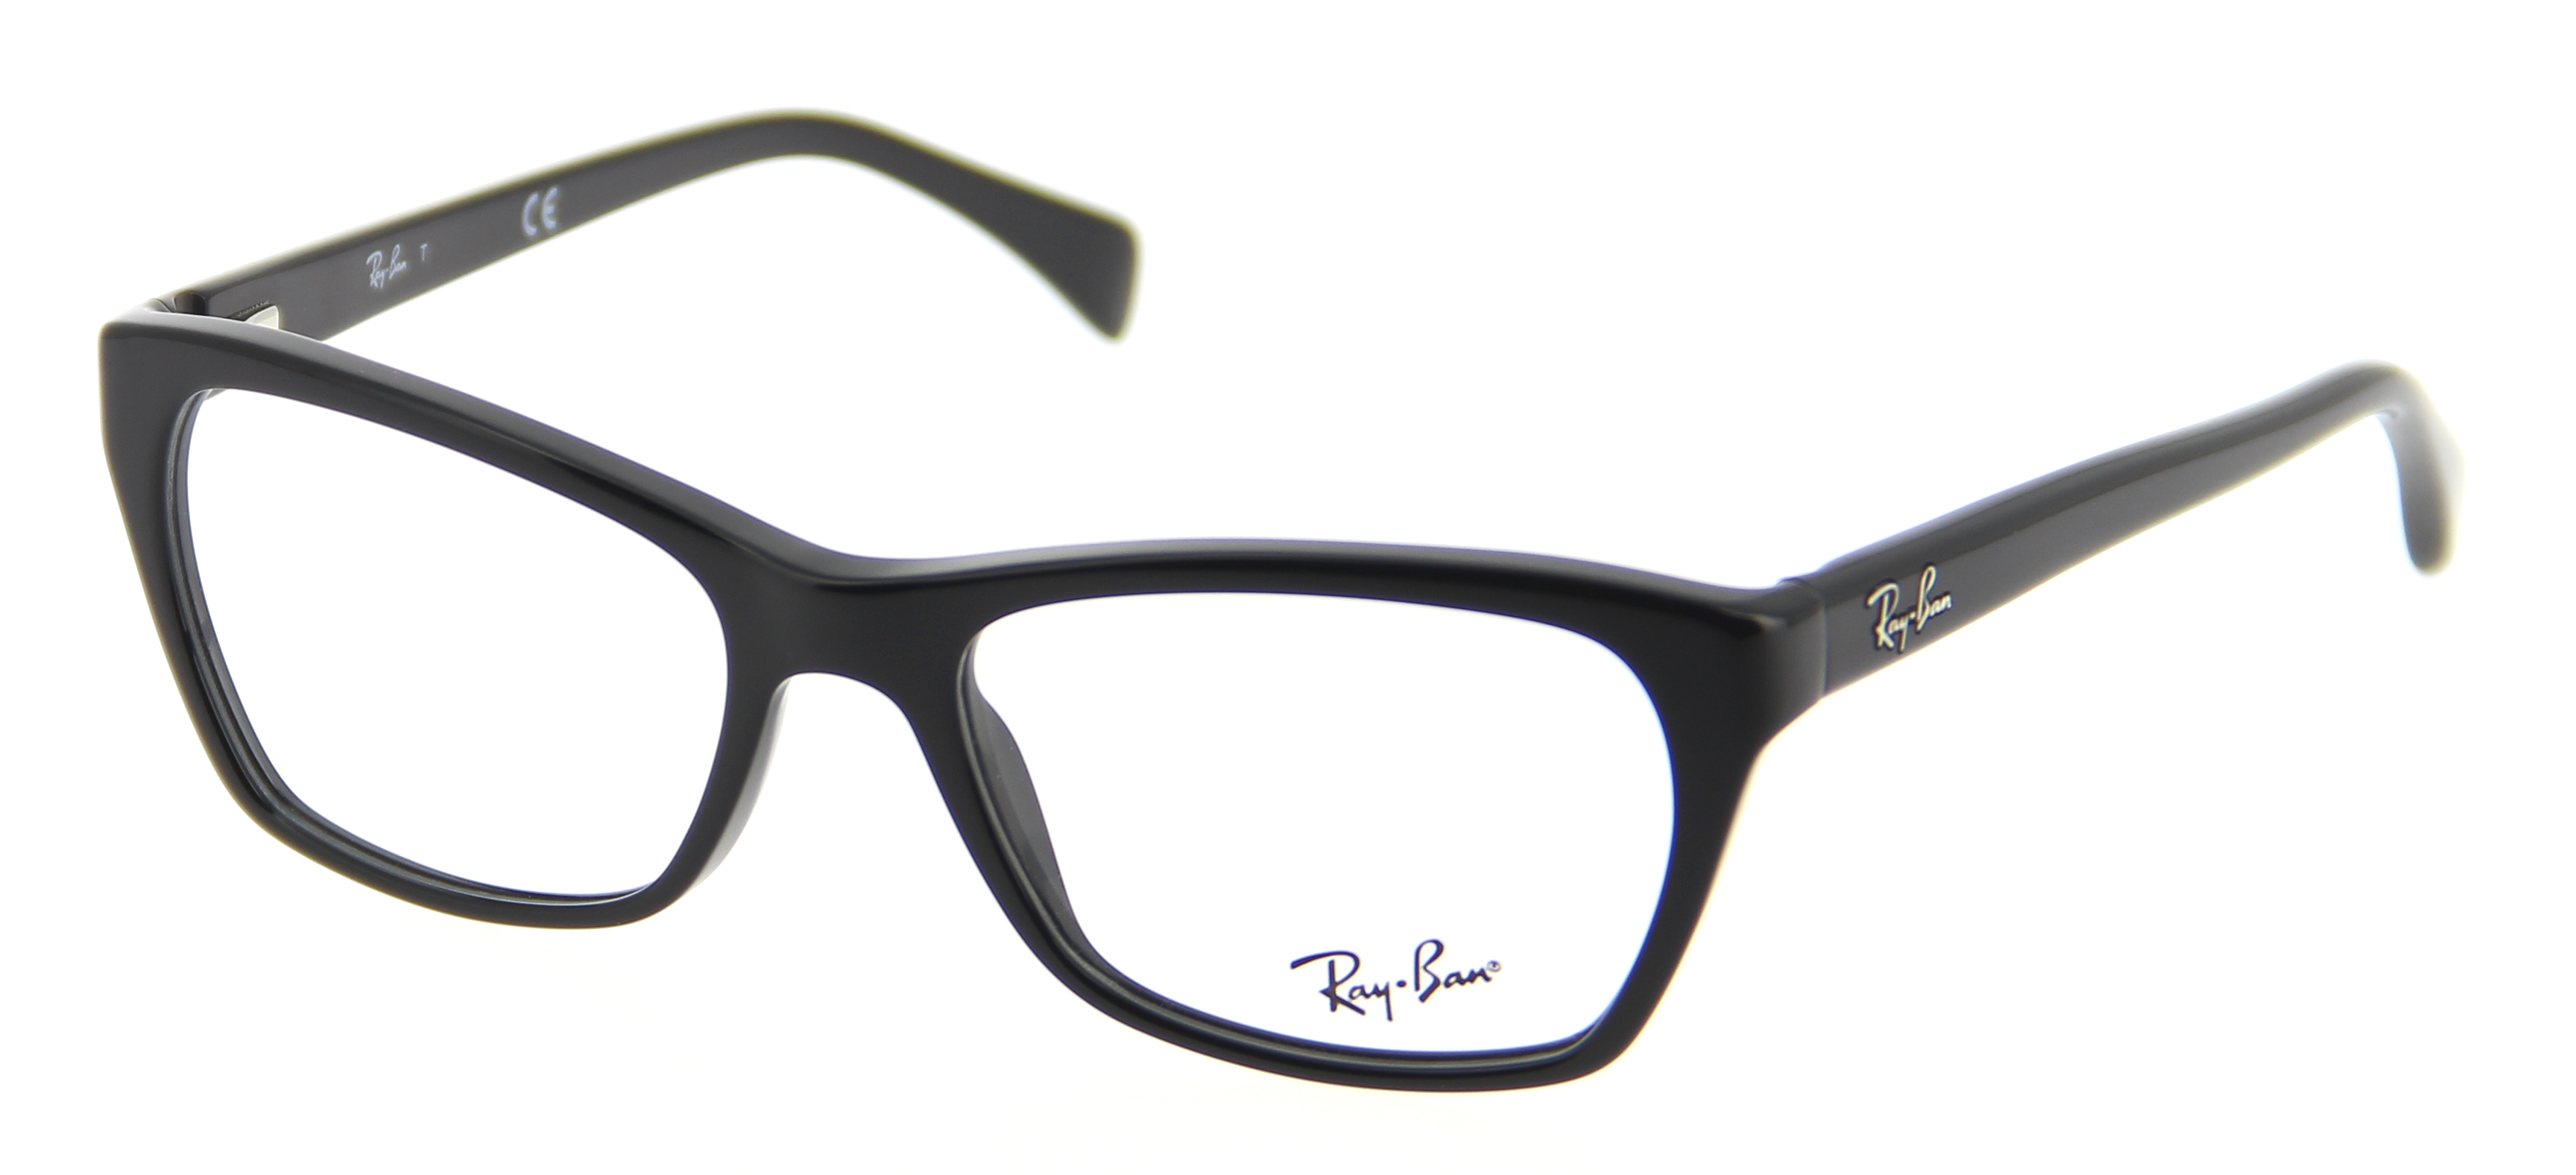 ac27aae1ec RayBan RX5287 - Family Vision Center 1